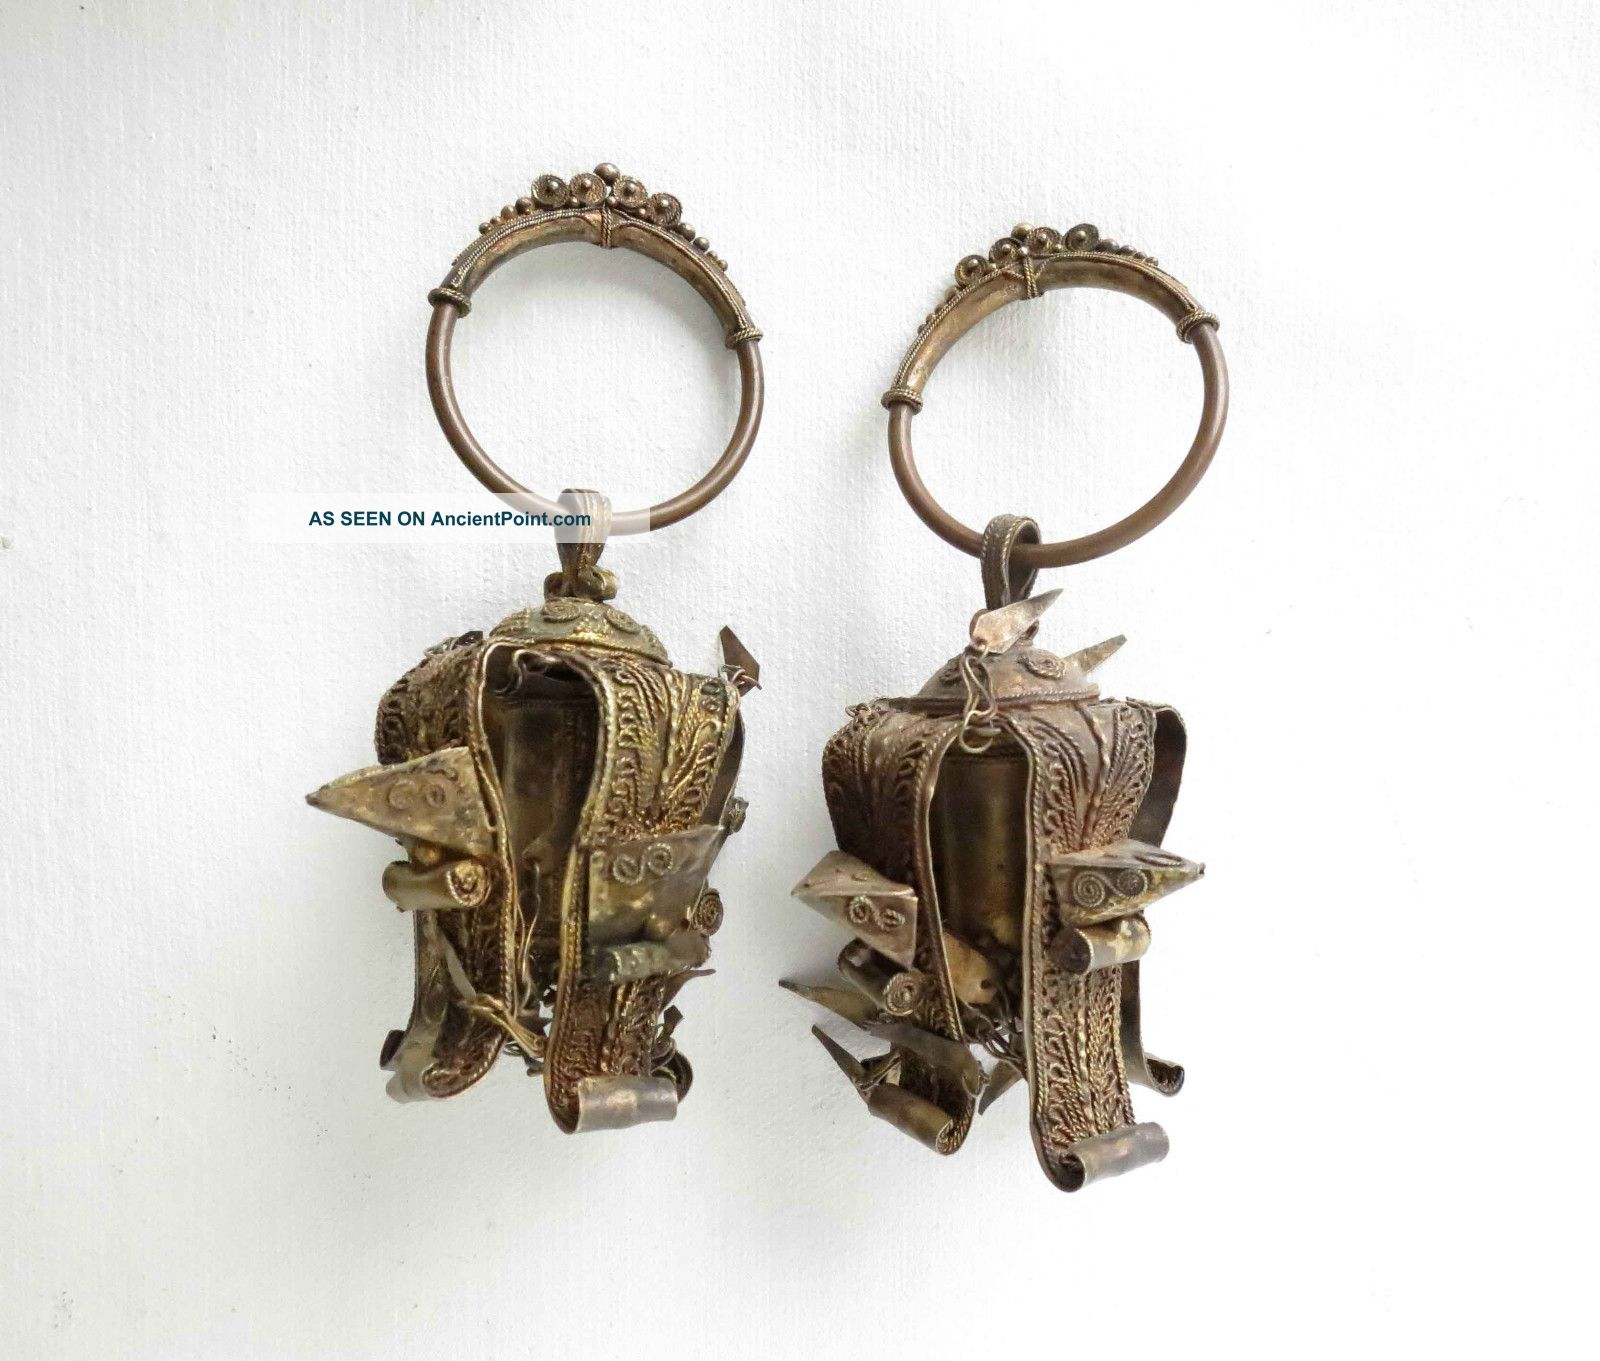 Rare Pair Of Batak Antique Earrings 19th - Early 20th Century (nias Dayak) Pacific Islands & Oceania photo